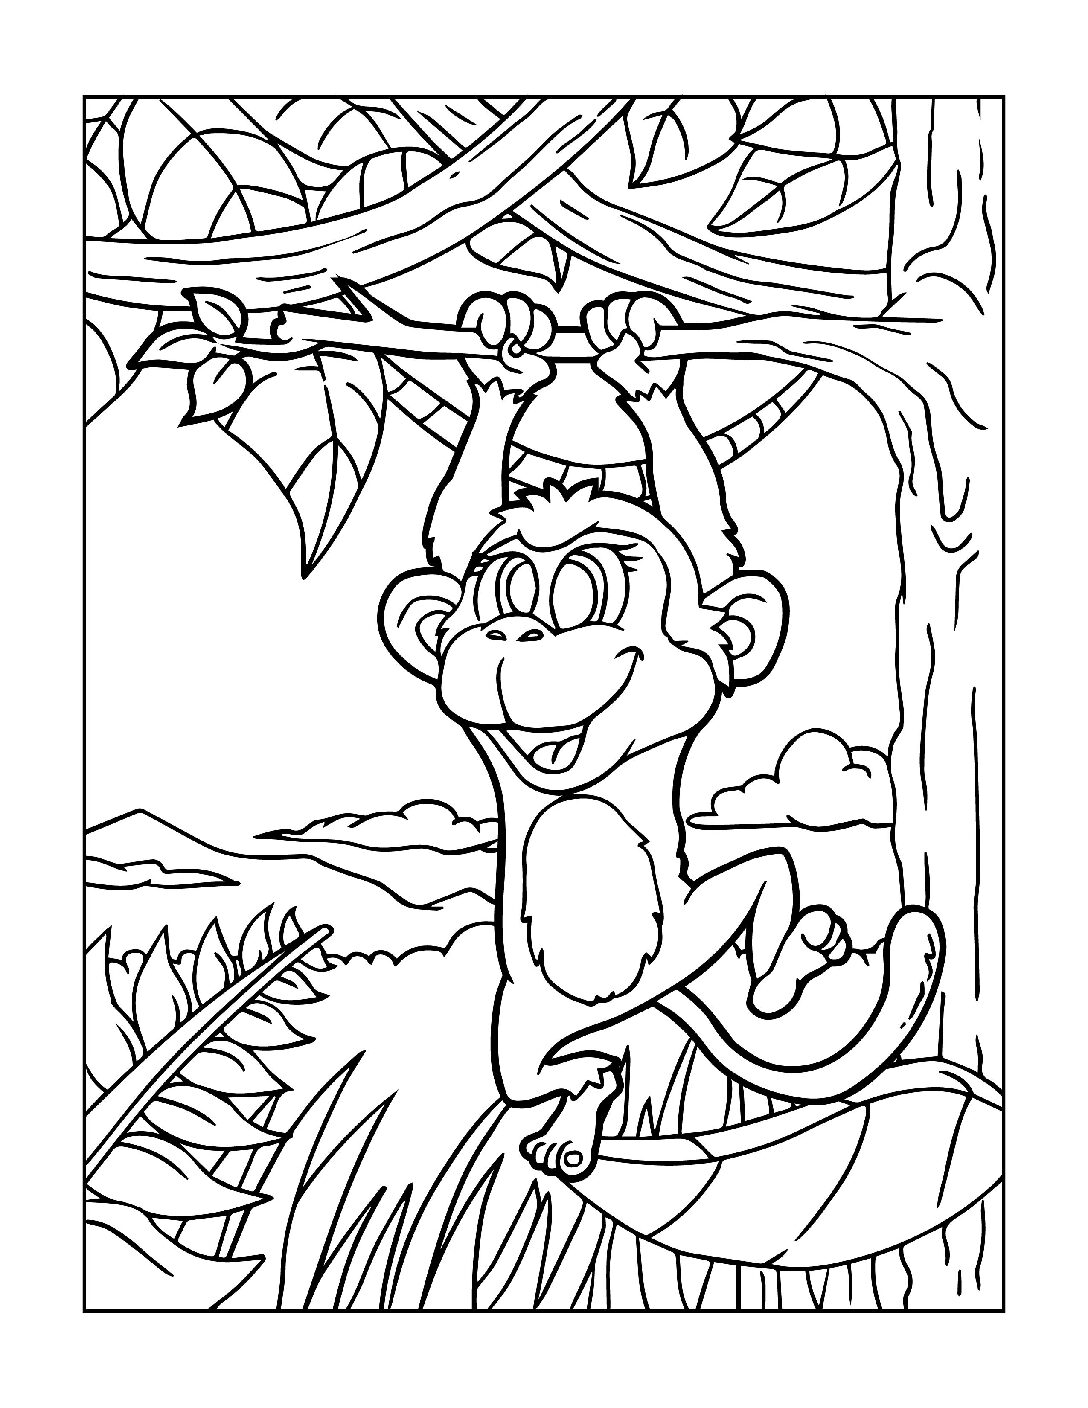 Coloring-Pages-Zoo-Animals-10-01-1-pdf Free Printable  Zoo Animals Colouring Pages